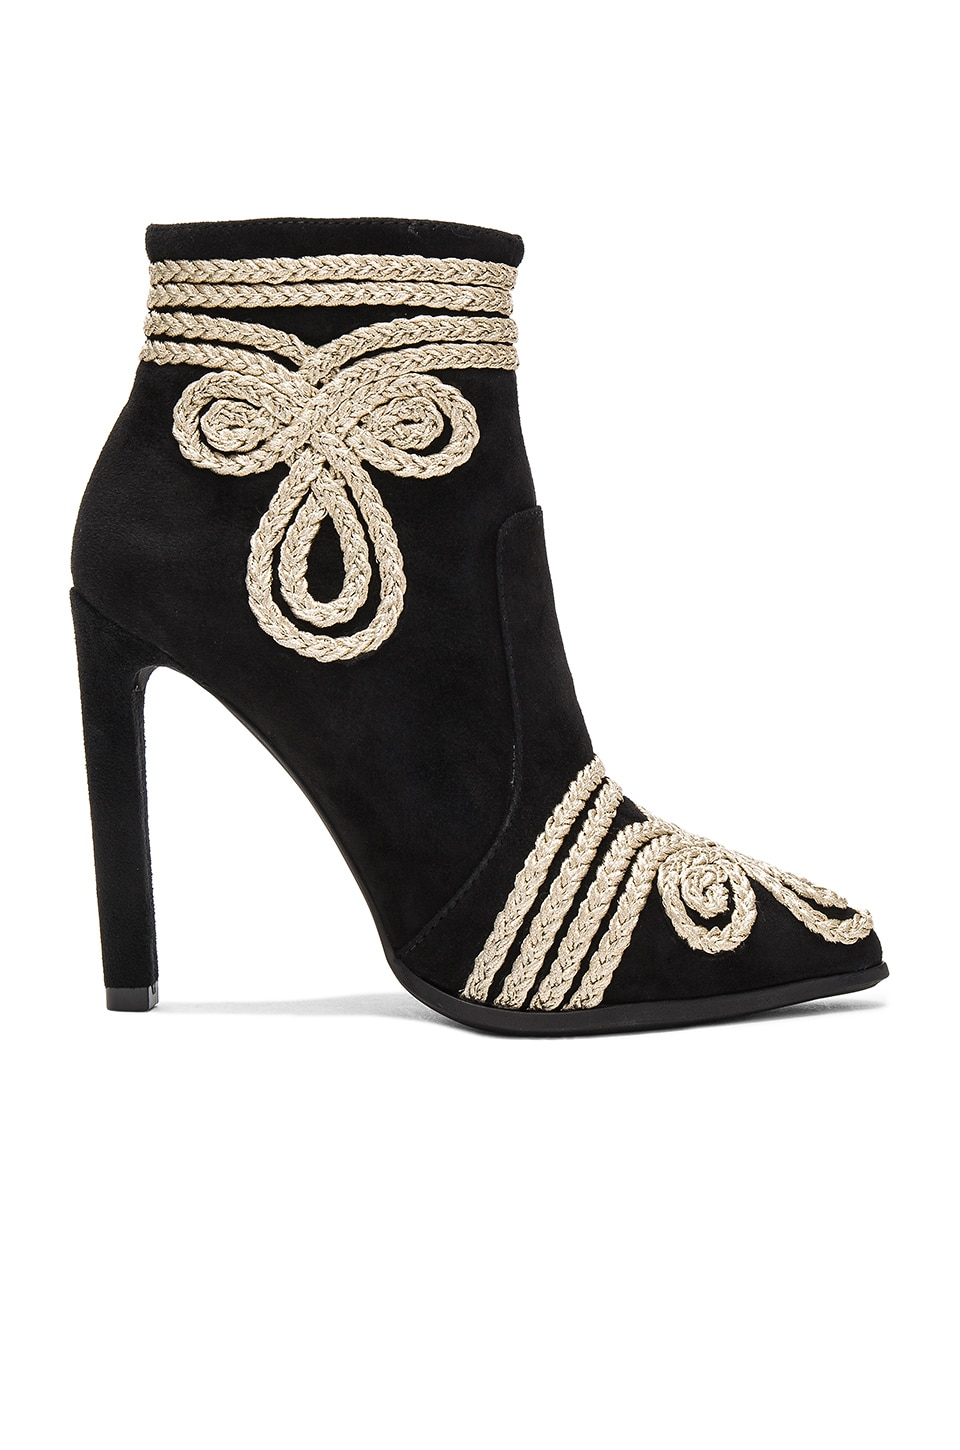 Jeffrey Campbell Drill Heels in Black Suede Gold